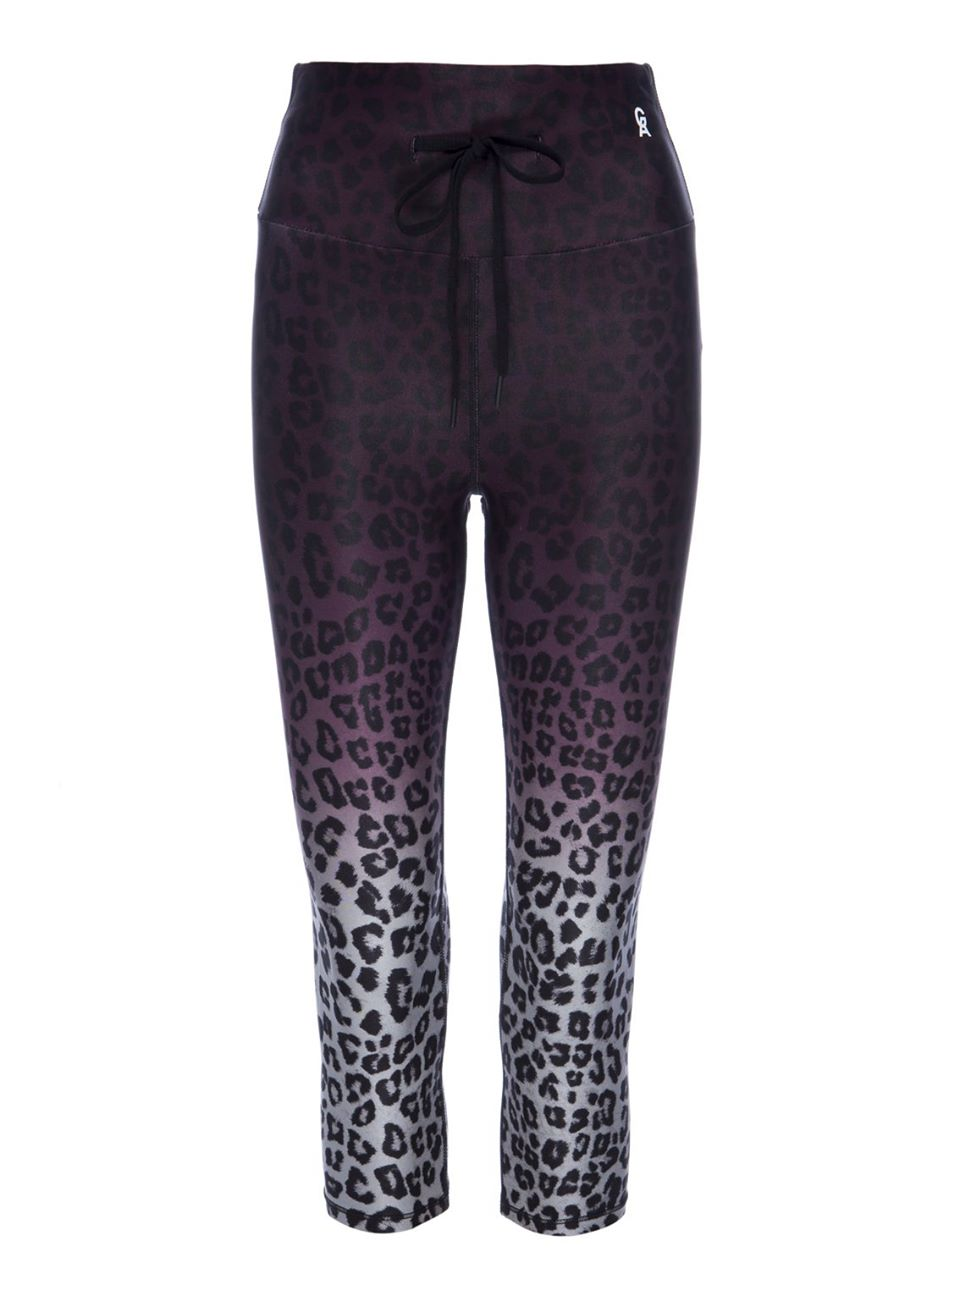 The Ombre Leopard Cinched Waist 7/8 Leggings